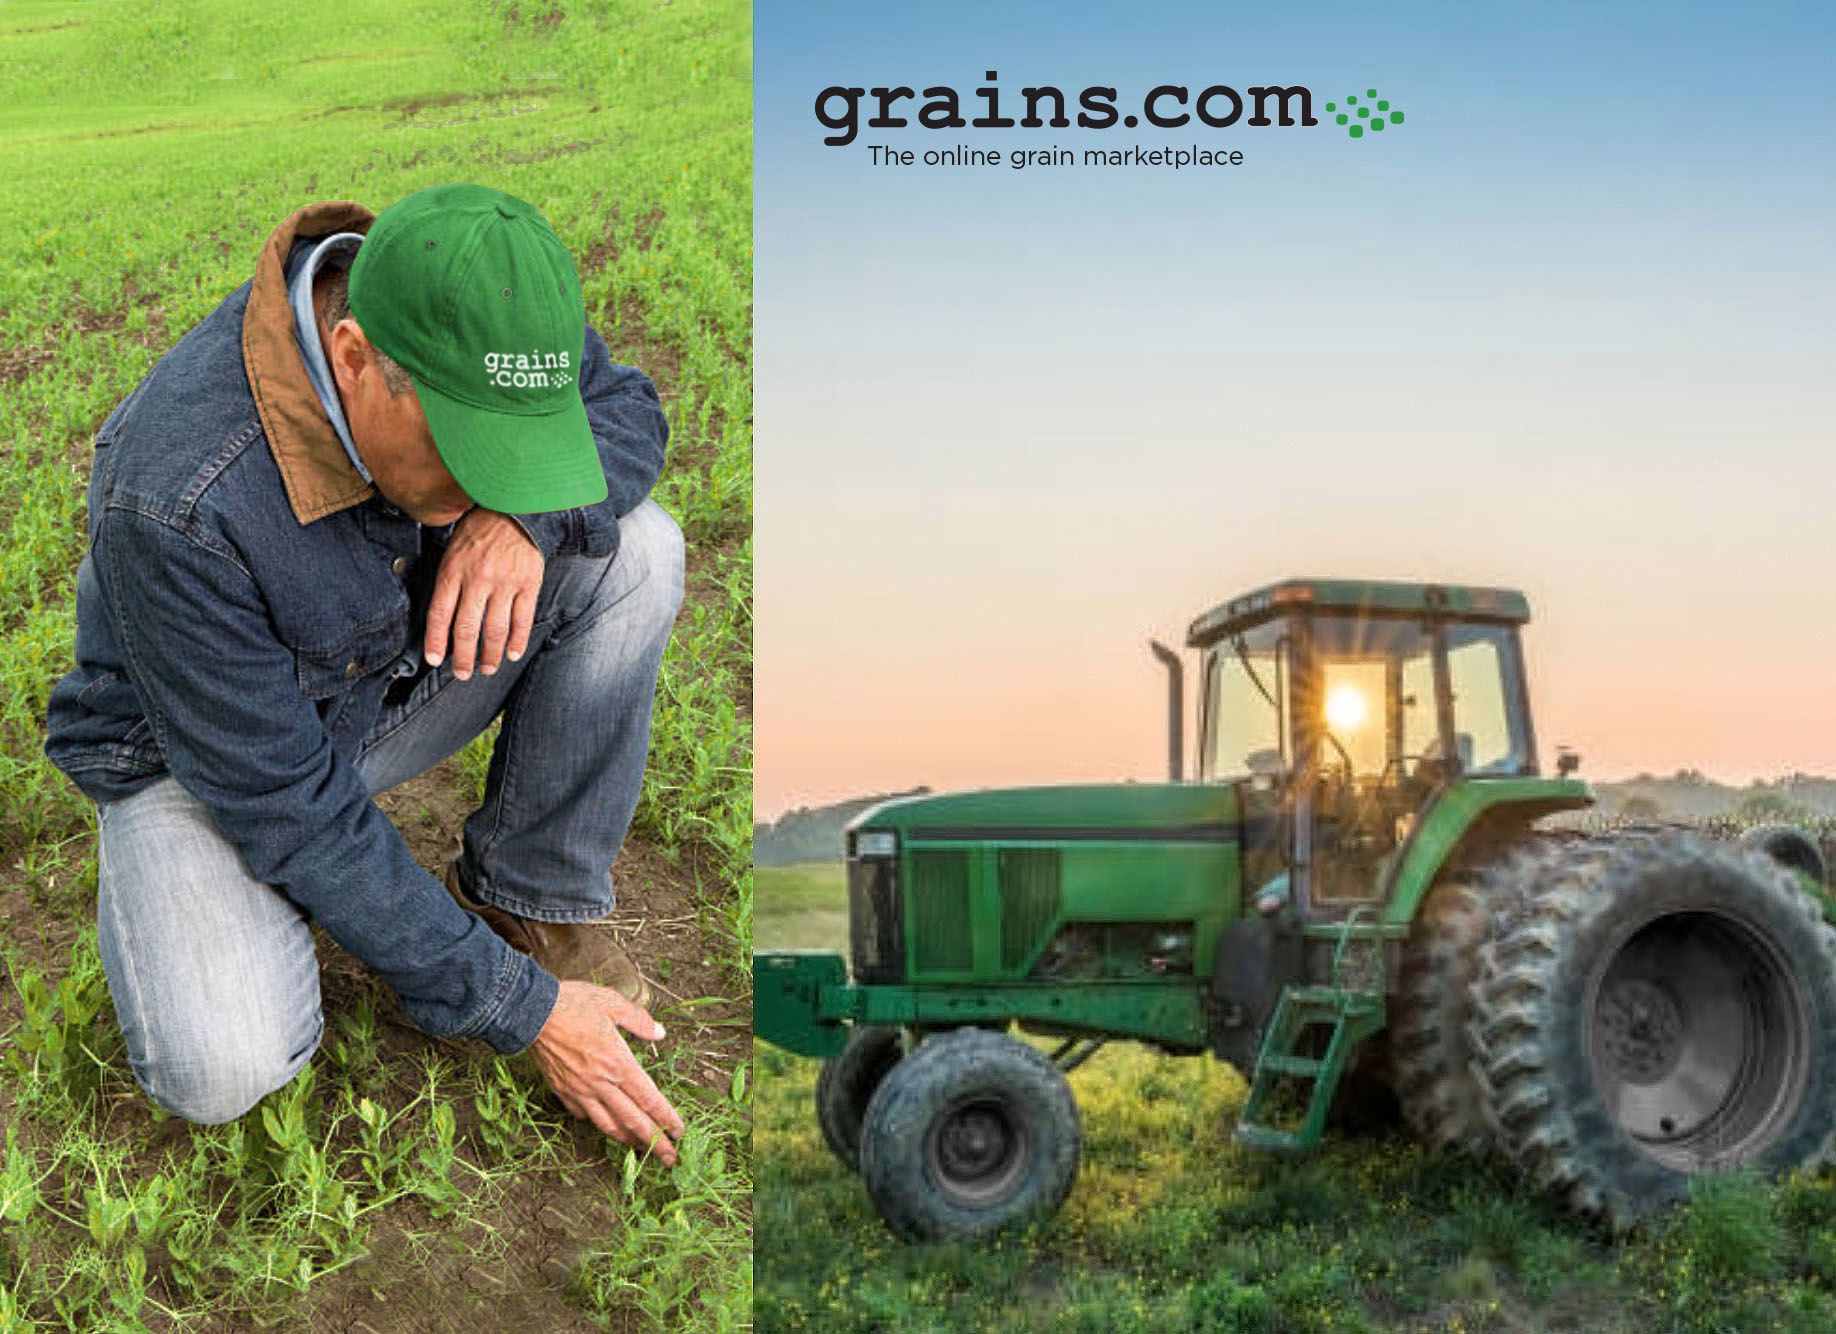 grains agtech photos mood farmer